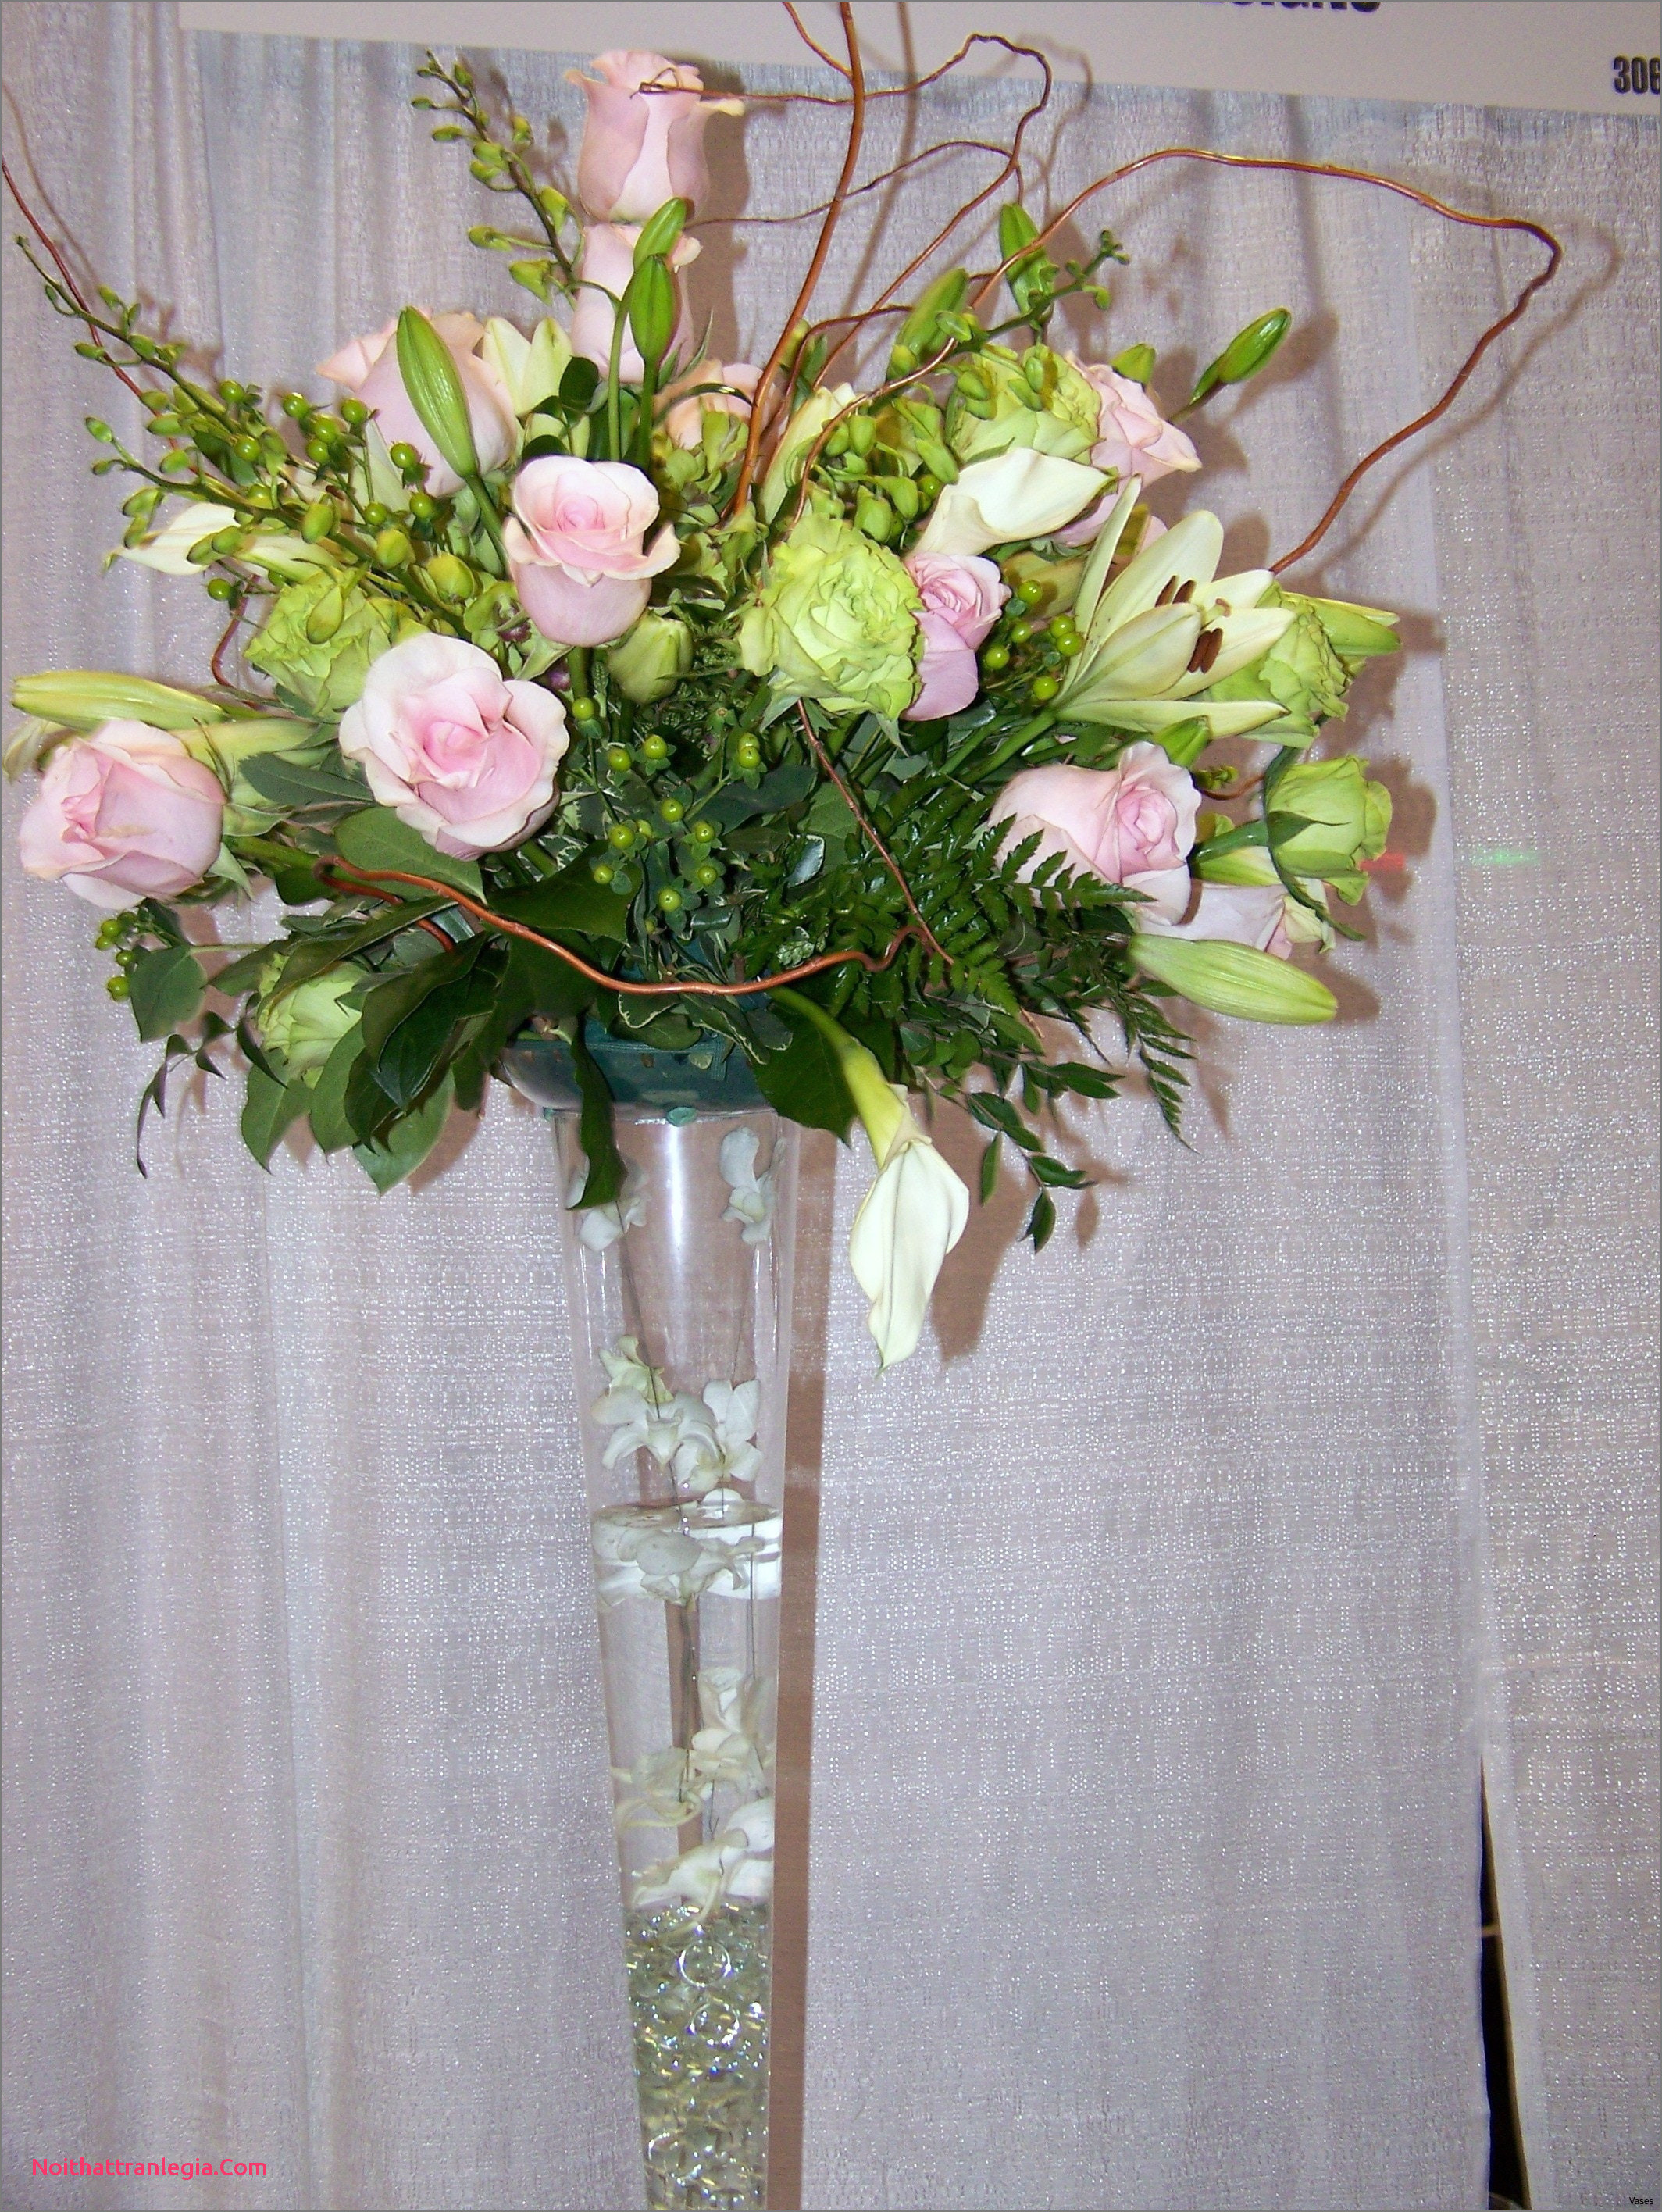 tall vase and flowers of 20 how to clean flower vases noithattranlegia vases design with full size of wedding wedding flower centerpieces inspirational h vases ideas for floral arrangements in